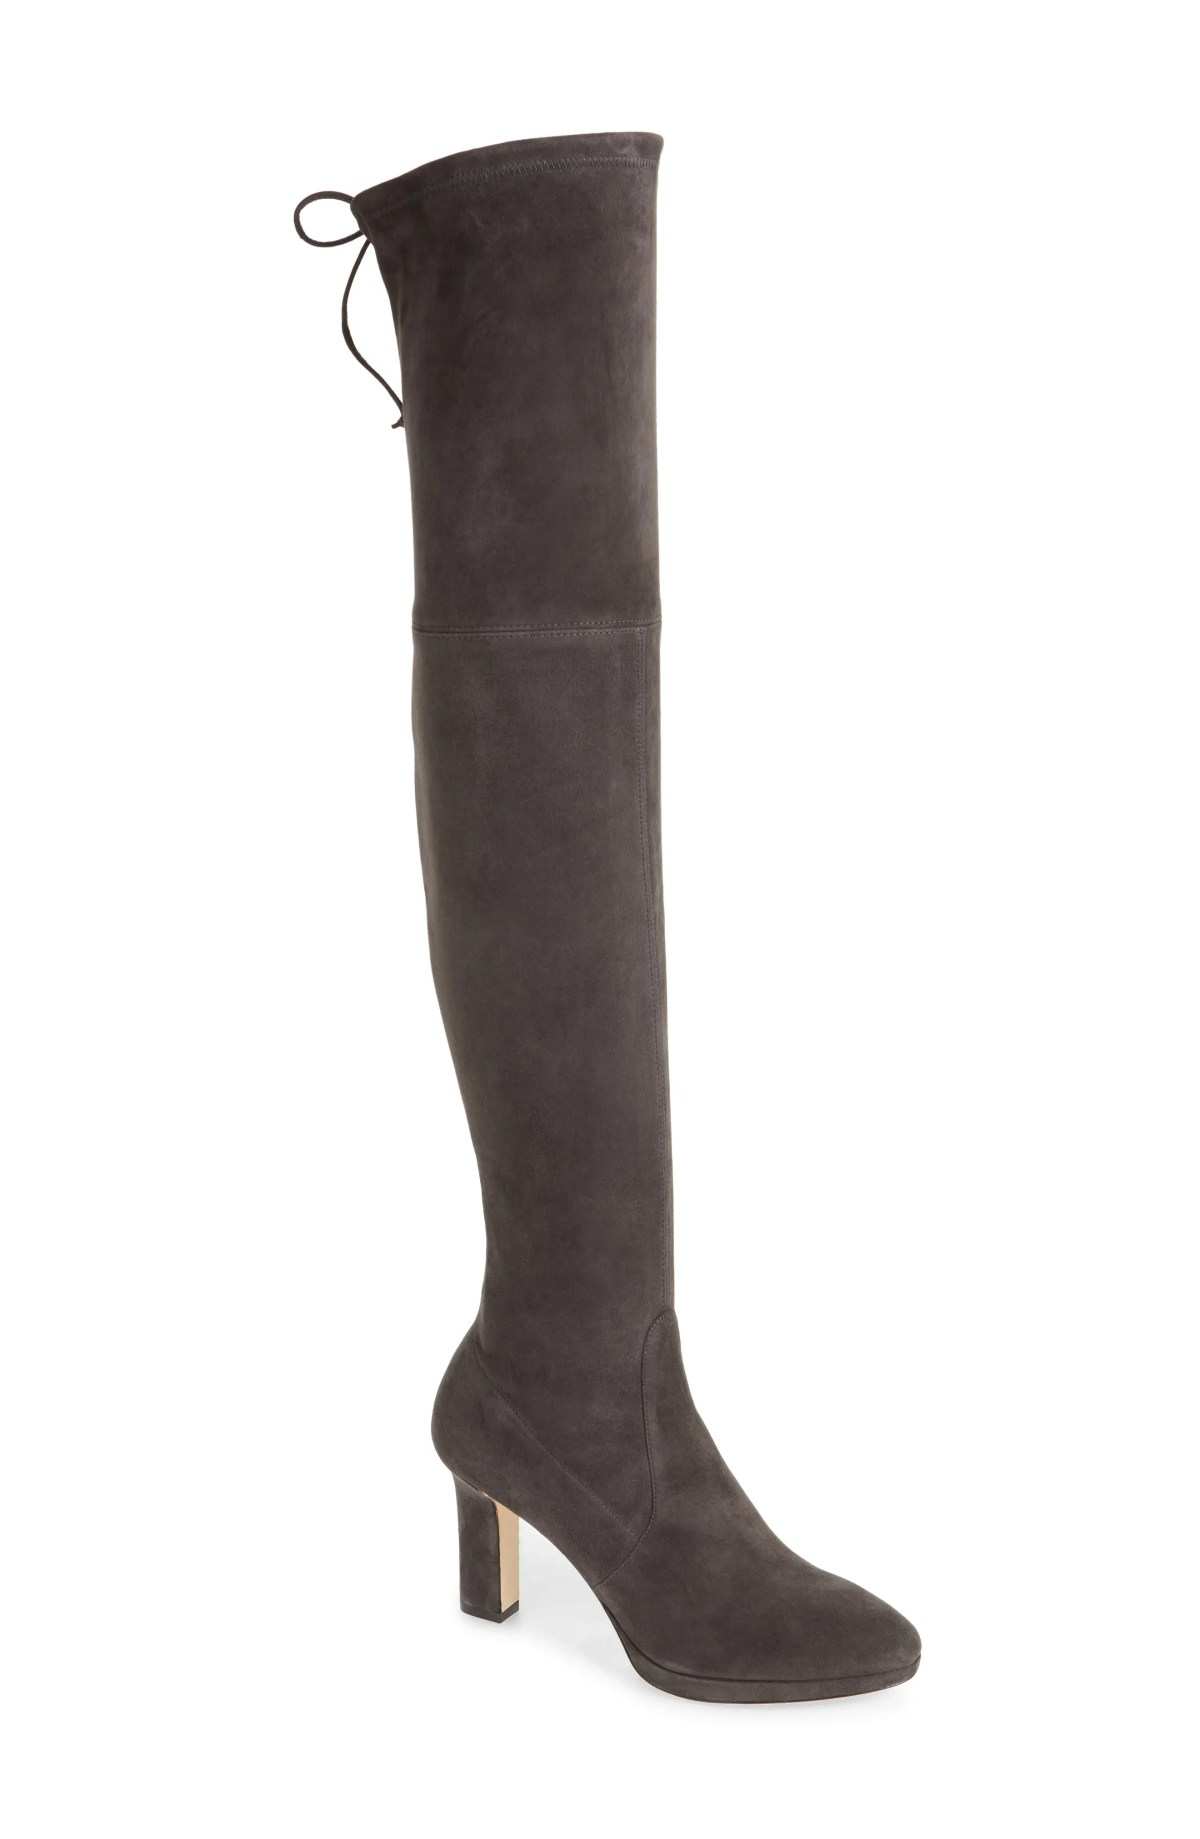 STUART WEITZMAN Ledyland Over the Knee Boot, Main, color, SLATE SUEDE